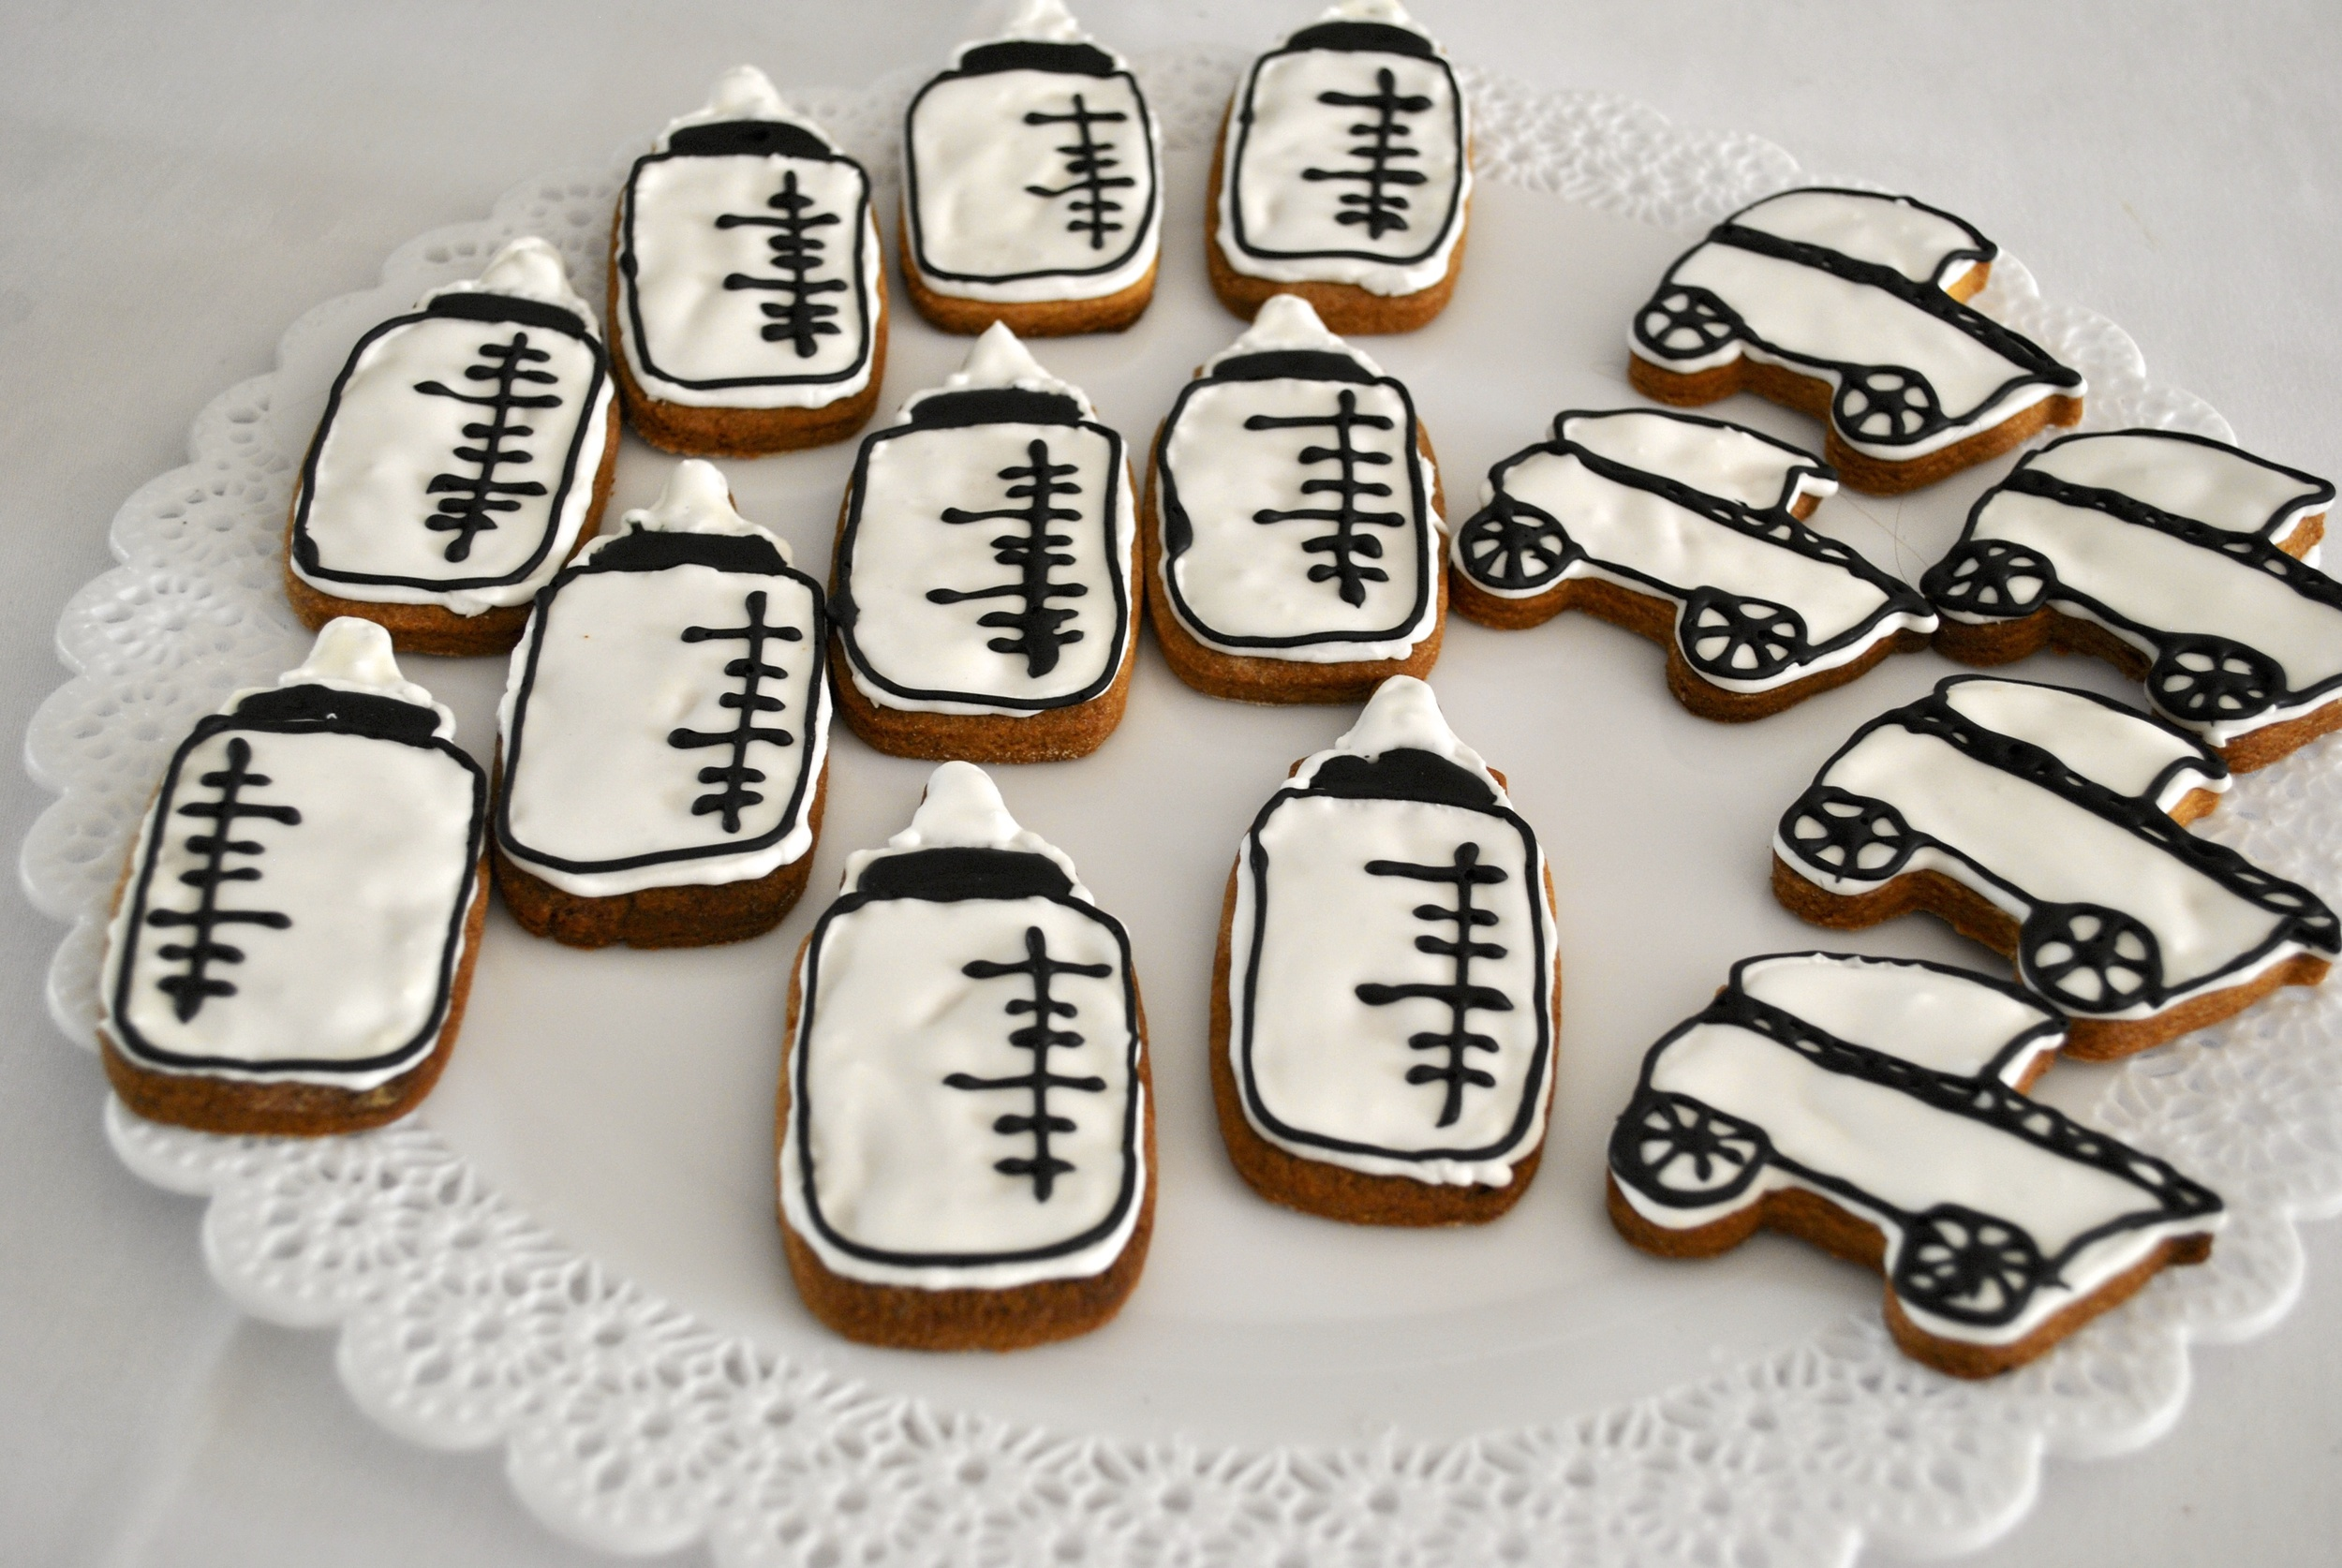 milk bottles & stroller cookies